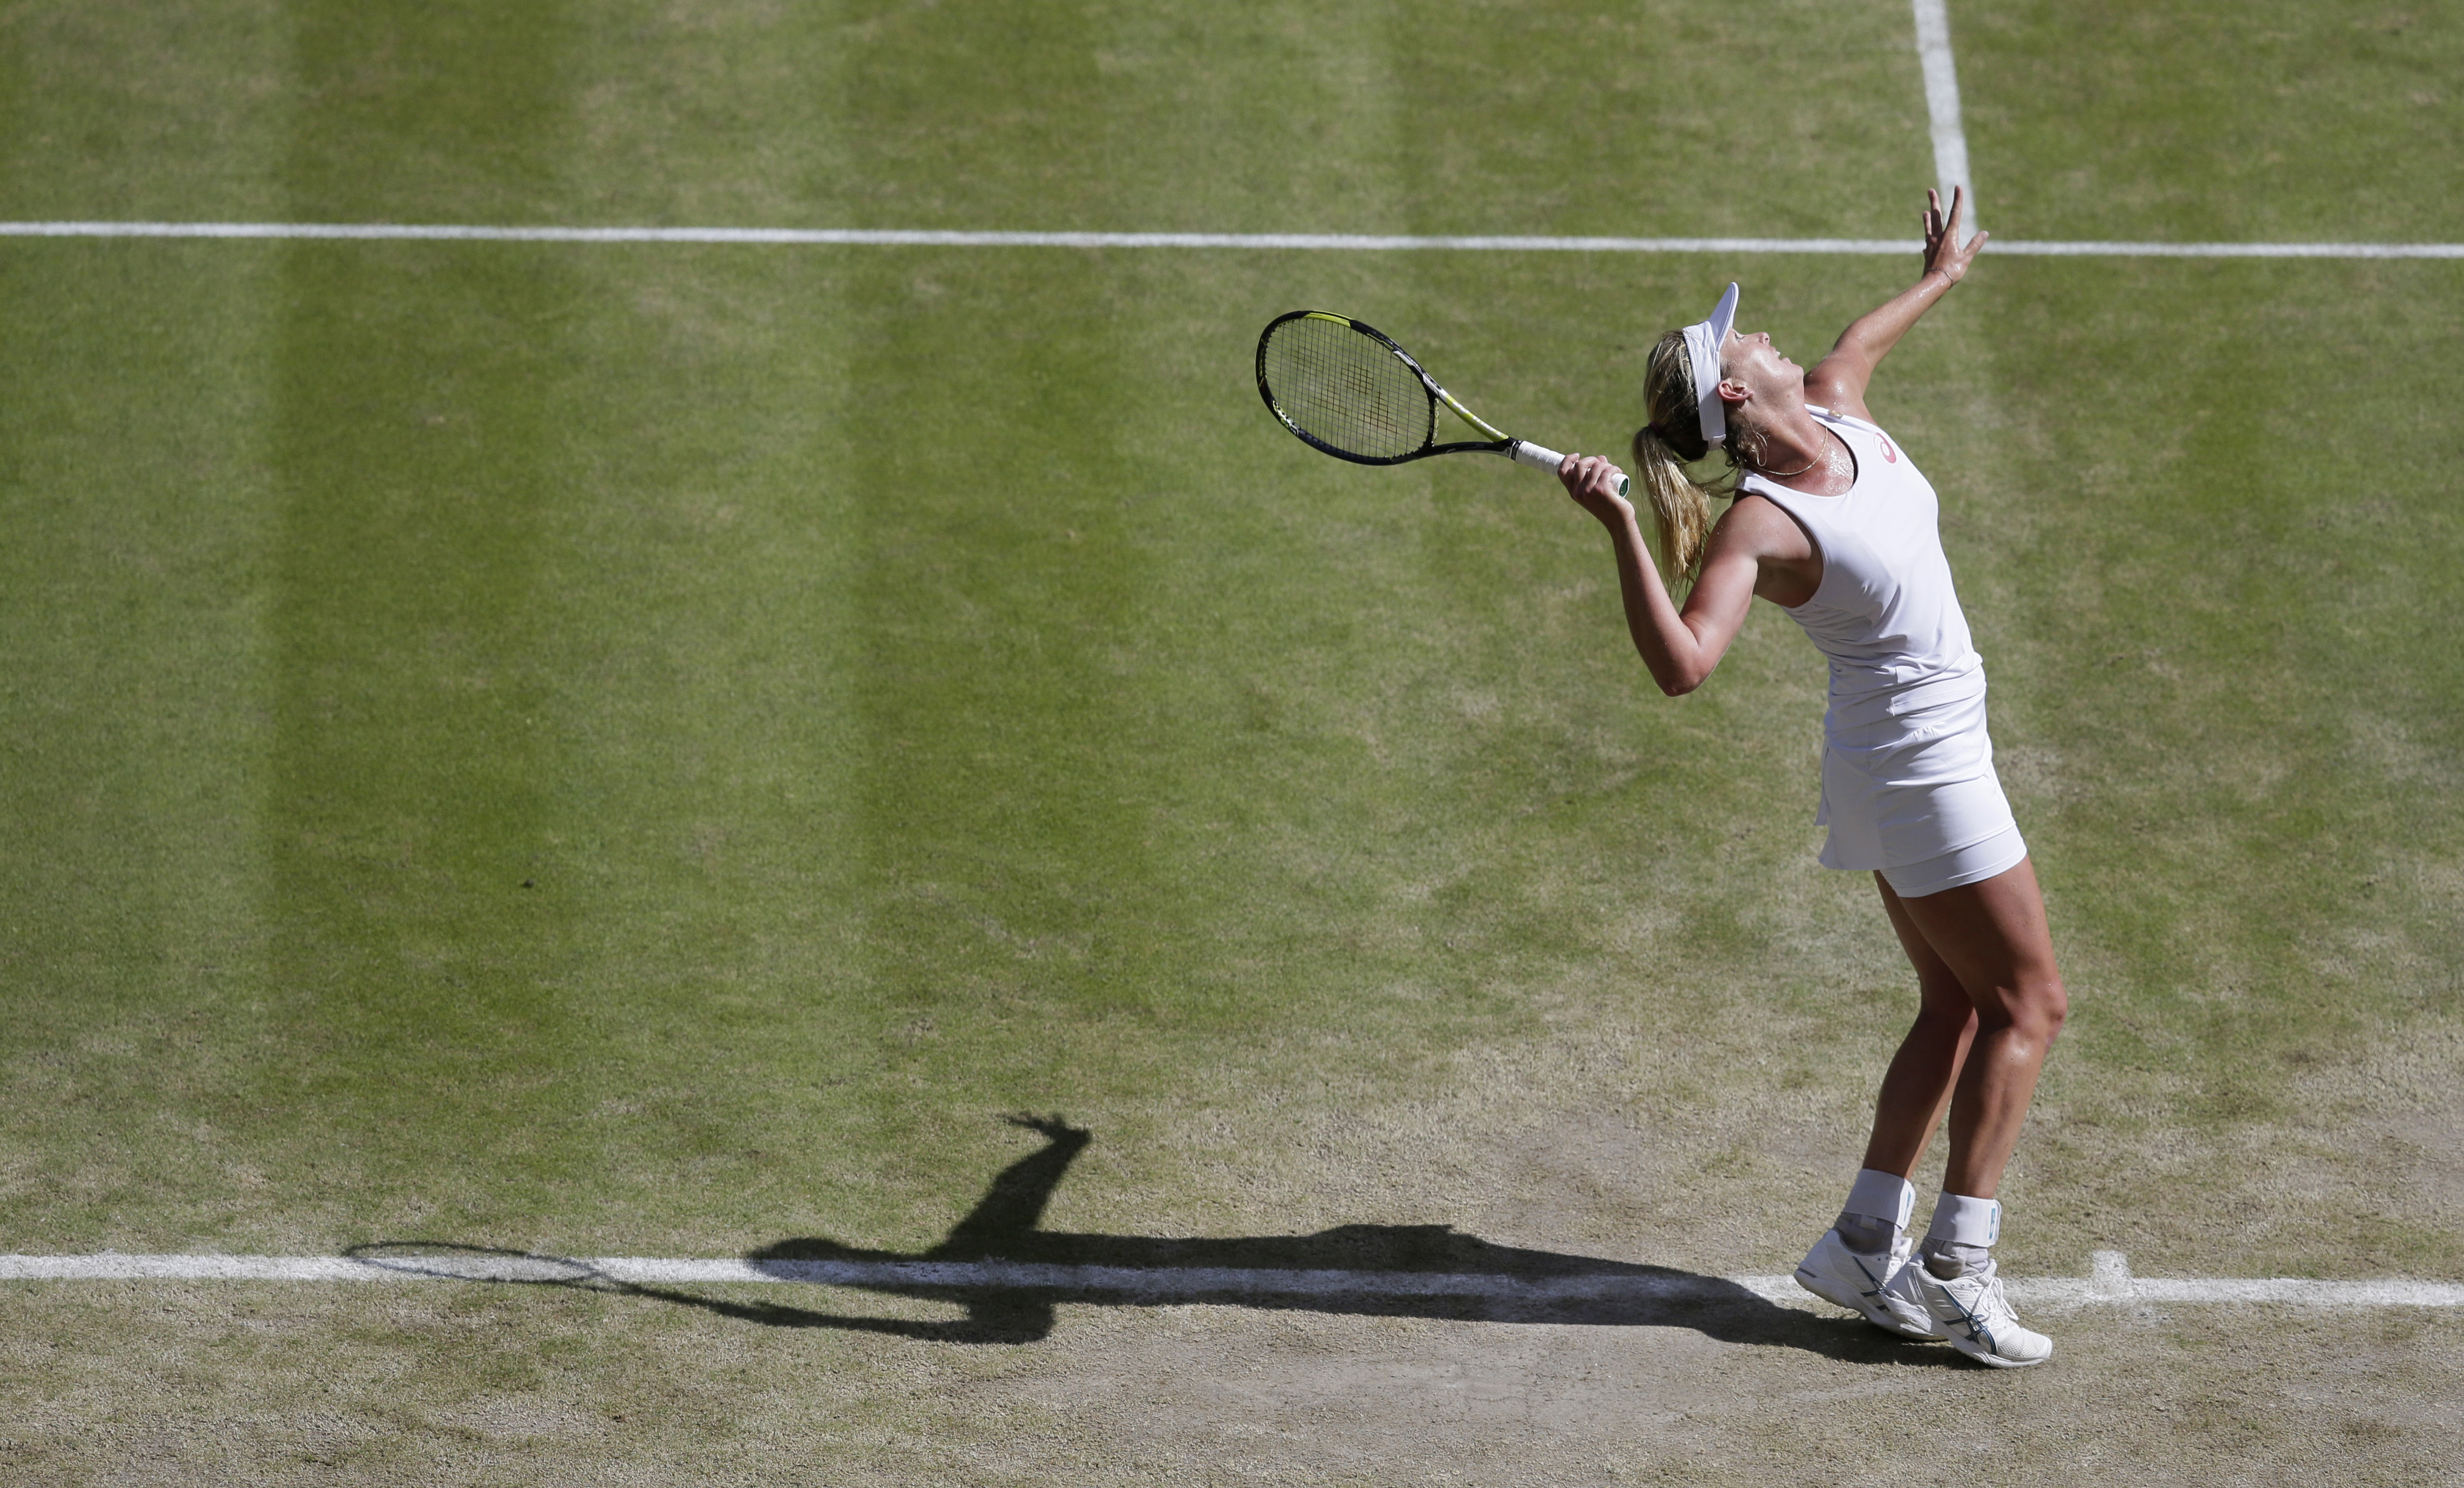 After Hand, Foot Issues, San Diego Native CoCo Vandeweghe Wins At Wimbledon